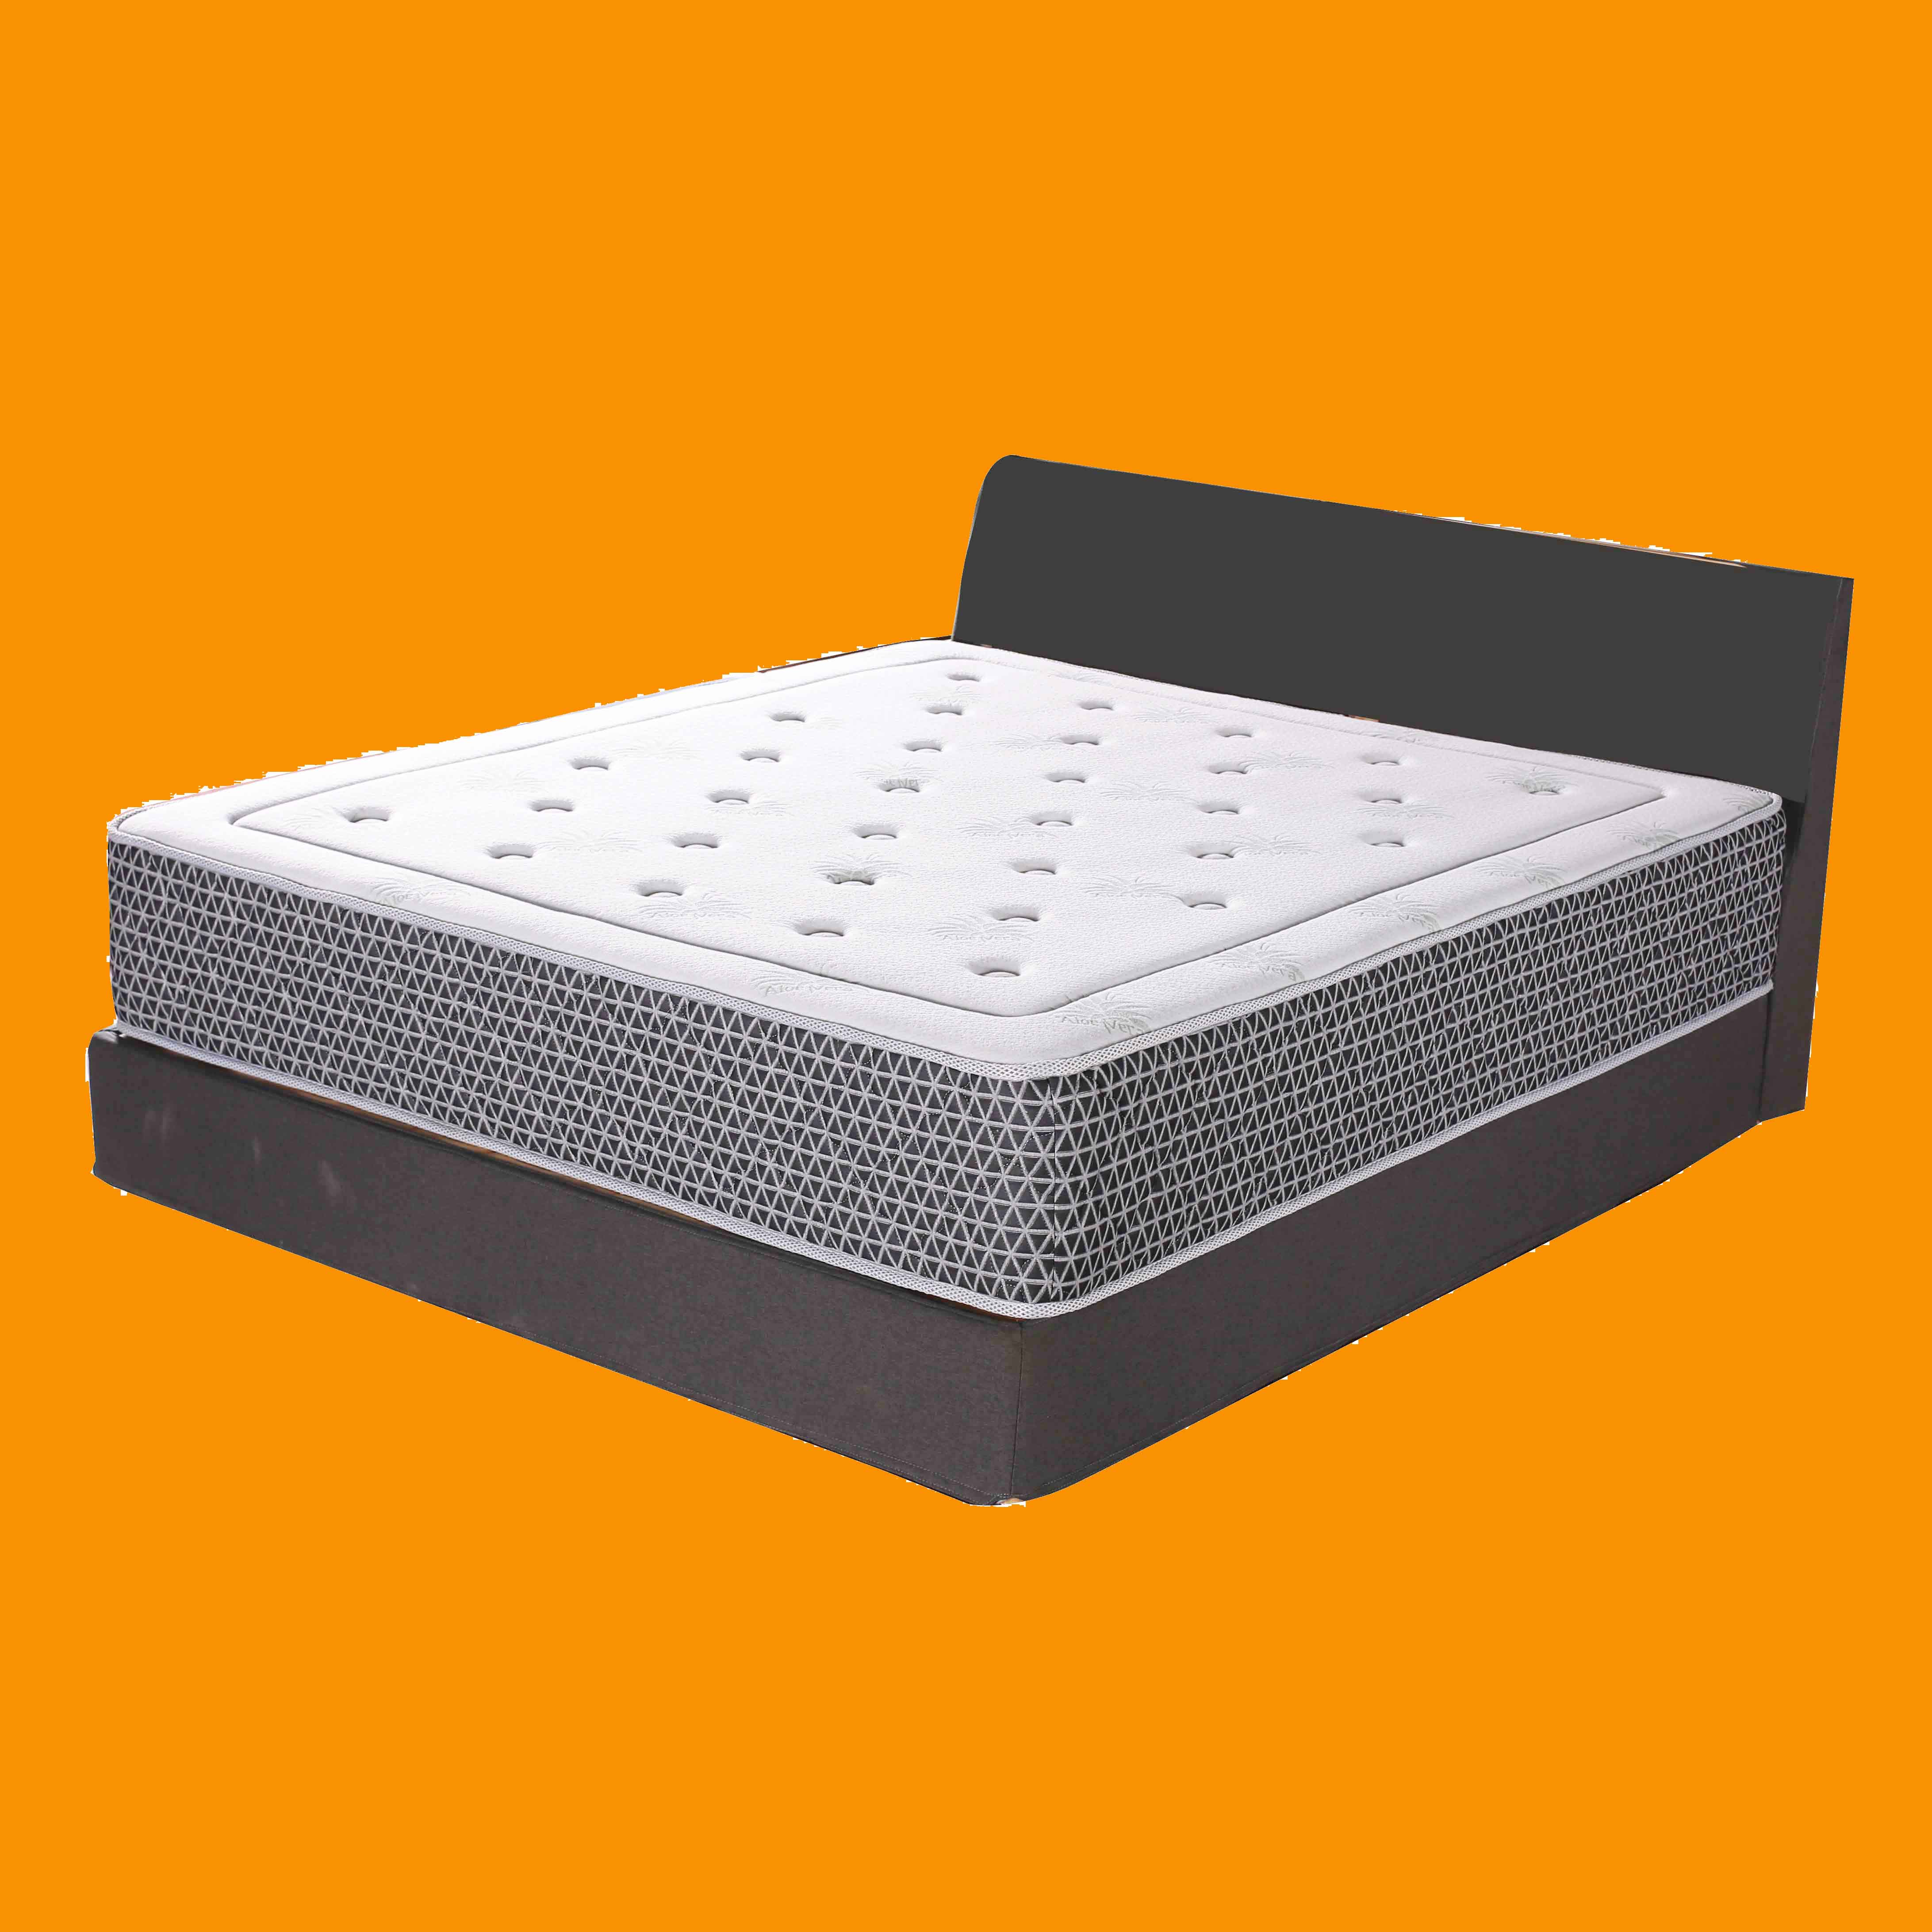 5 Star Roll Pack Euro Top Latex Foam Pocket Spring Hybrid Hotel Mattress 2019 hot selling mattress - Jozy Mattress | Jozy.net